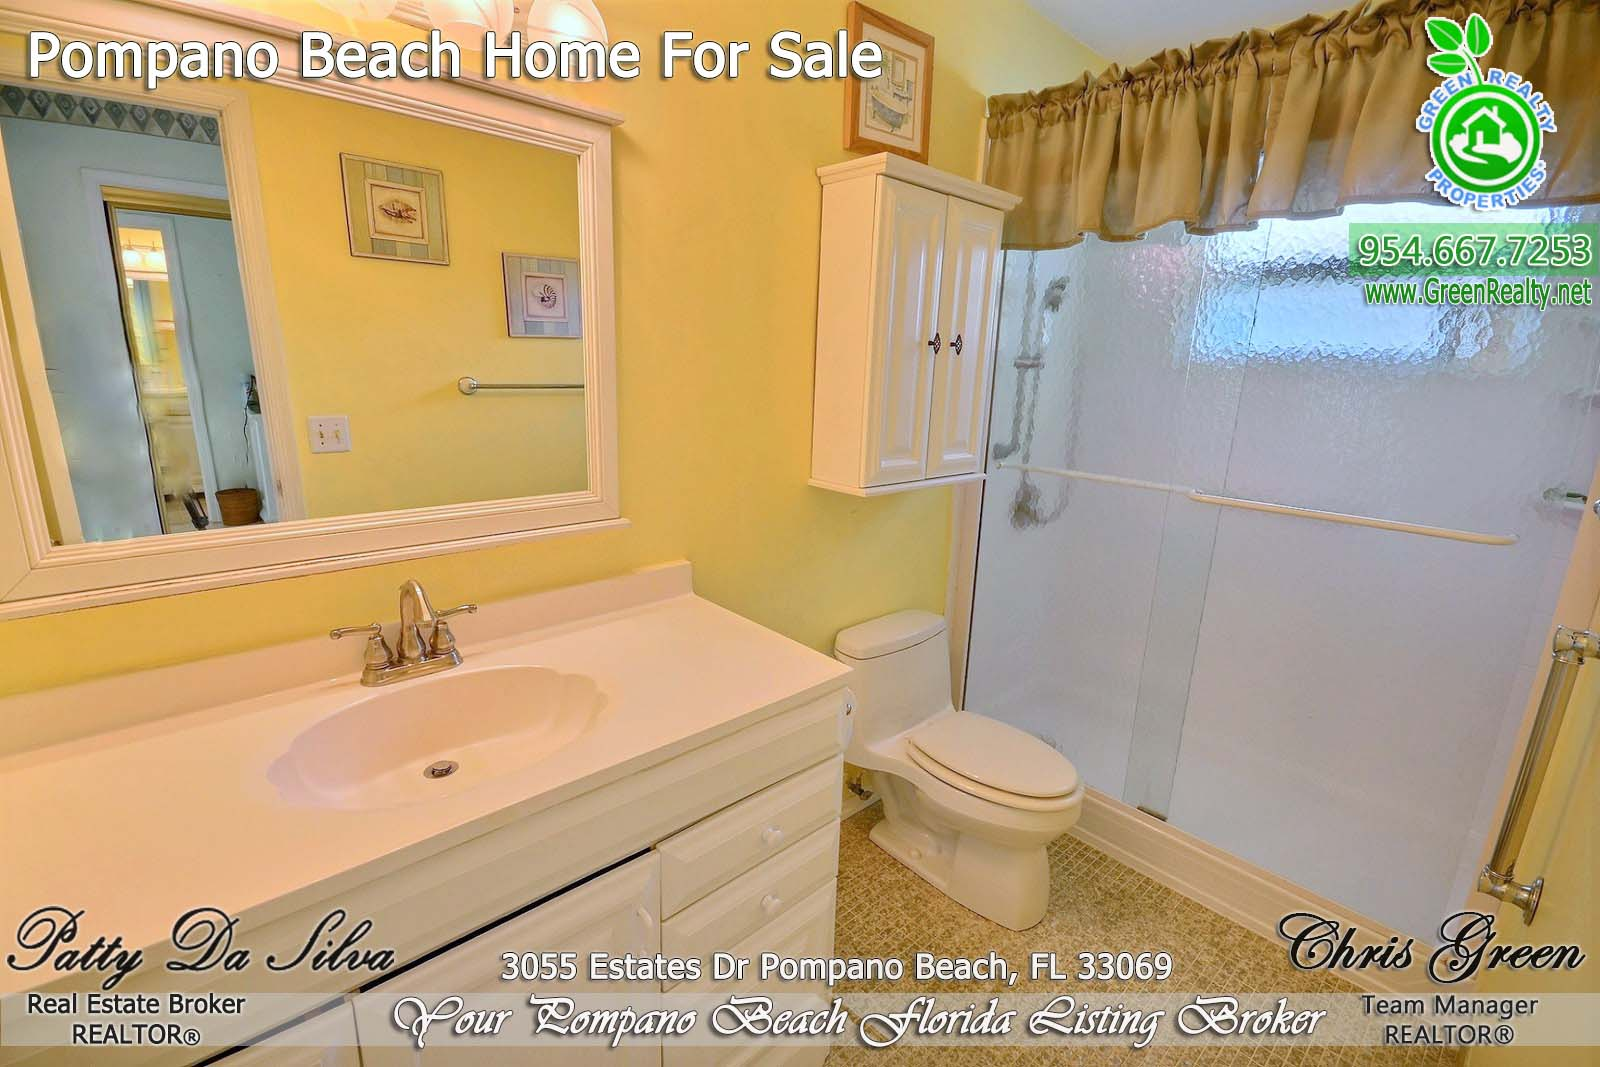 20 Patty Da Silva SELLS Pompano Beach Homes (5)